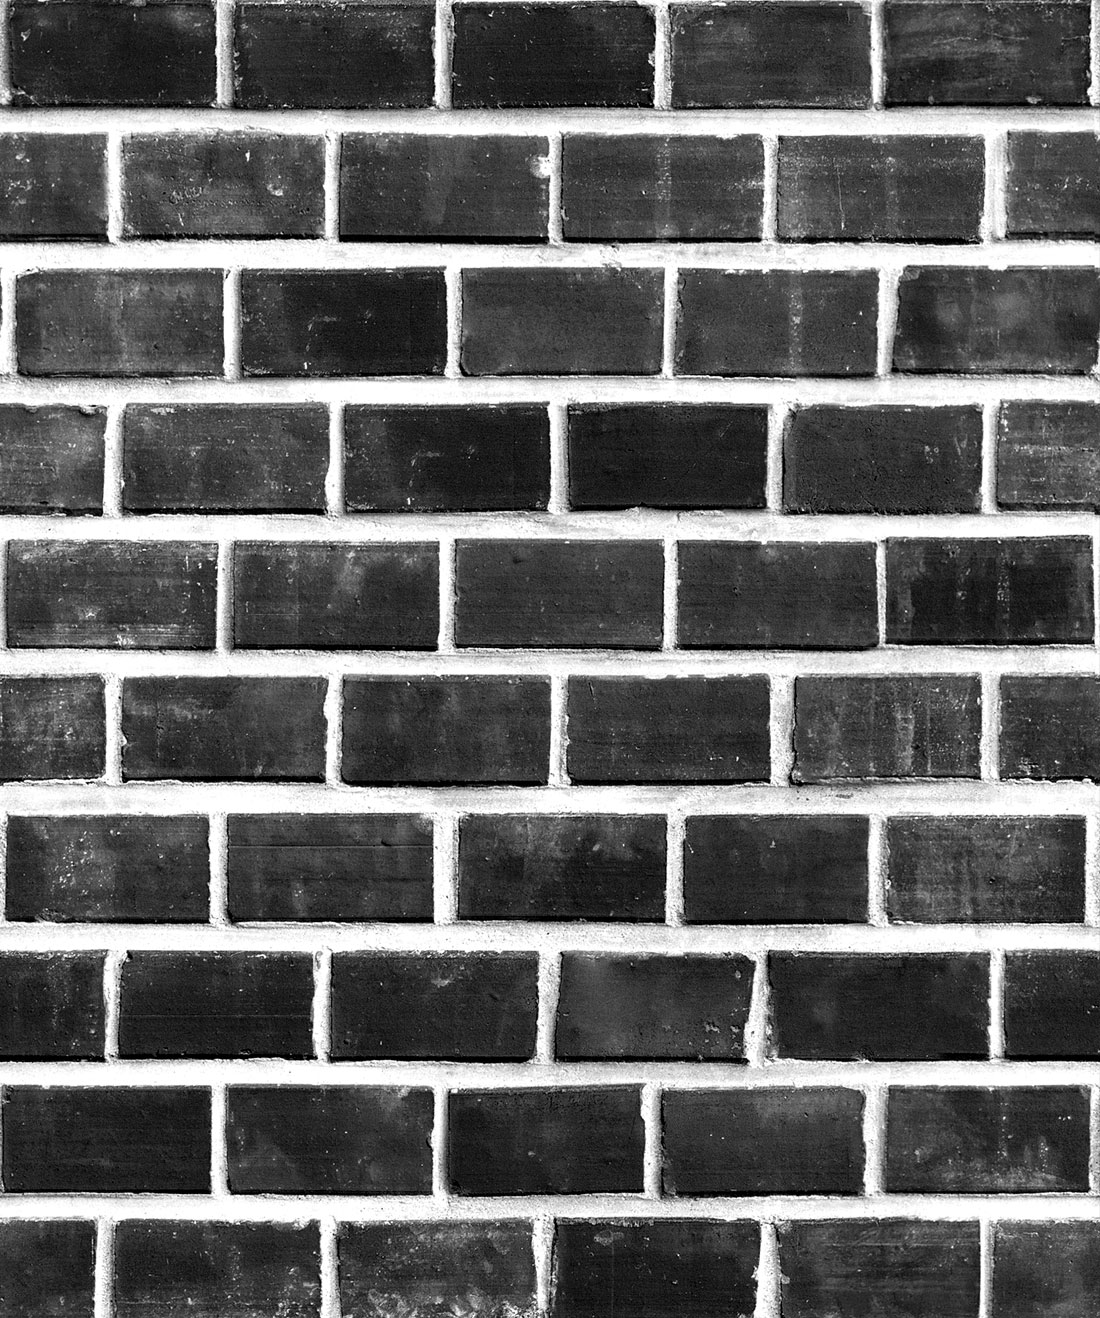 Lubeck Bricks Wallpaper Exposed Black Bricks Milton King